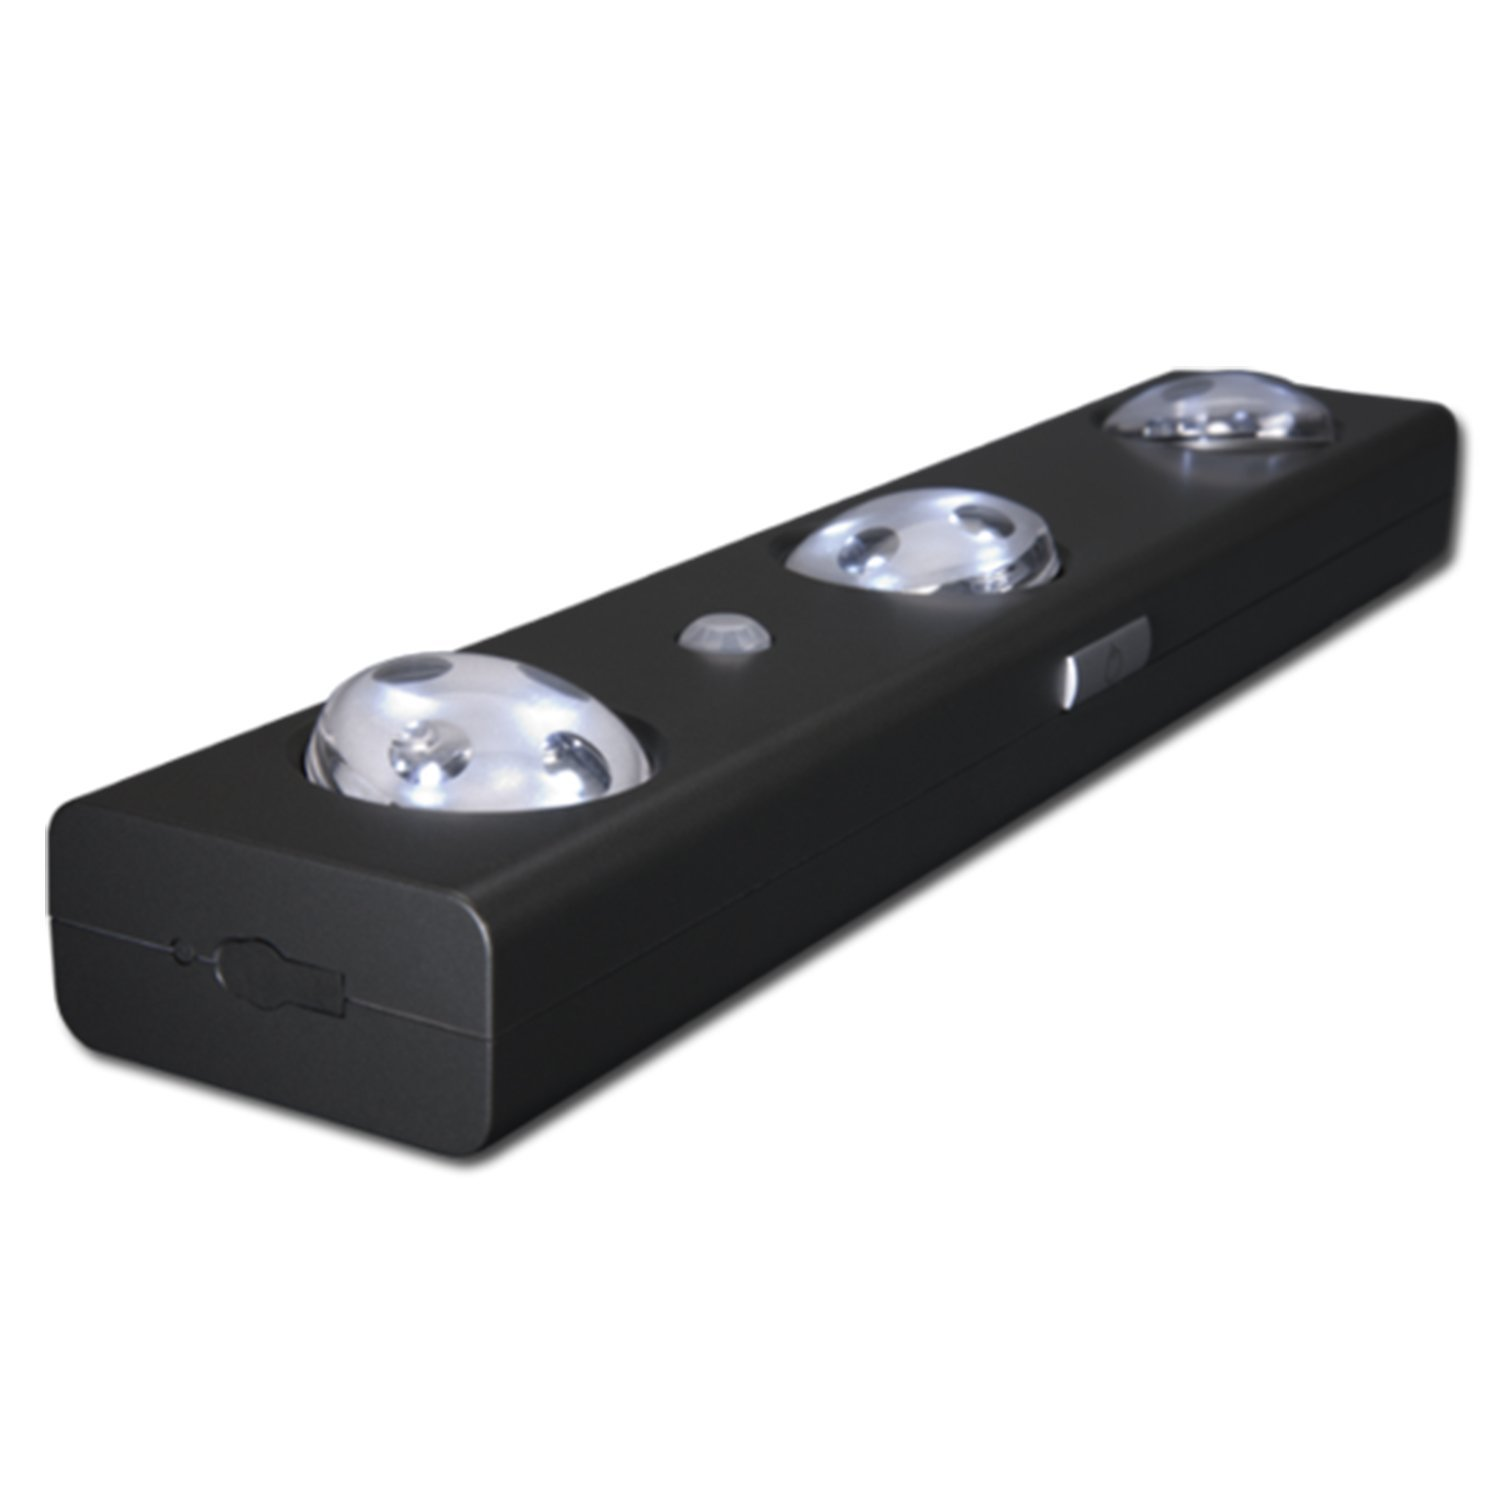 image showing the Stack-On SPAL-300 Motion Sensitive LED Security